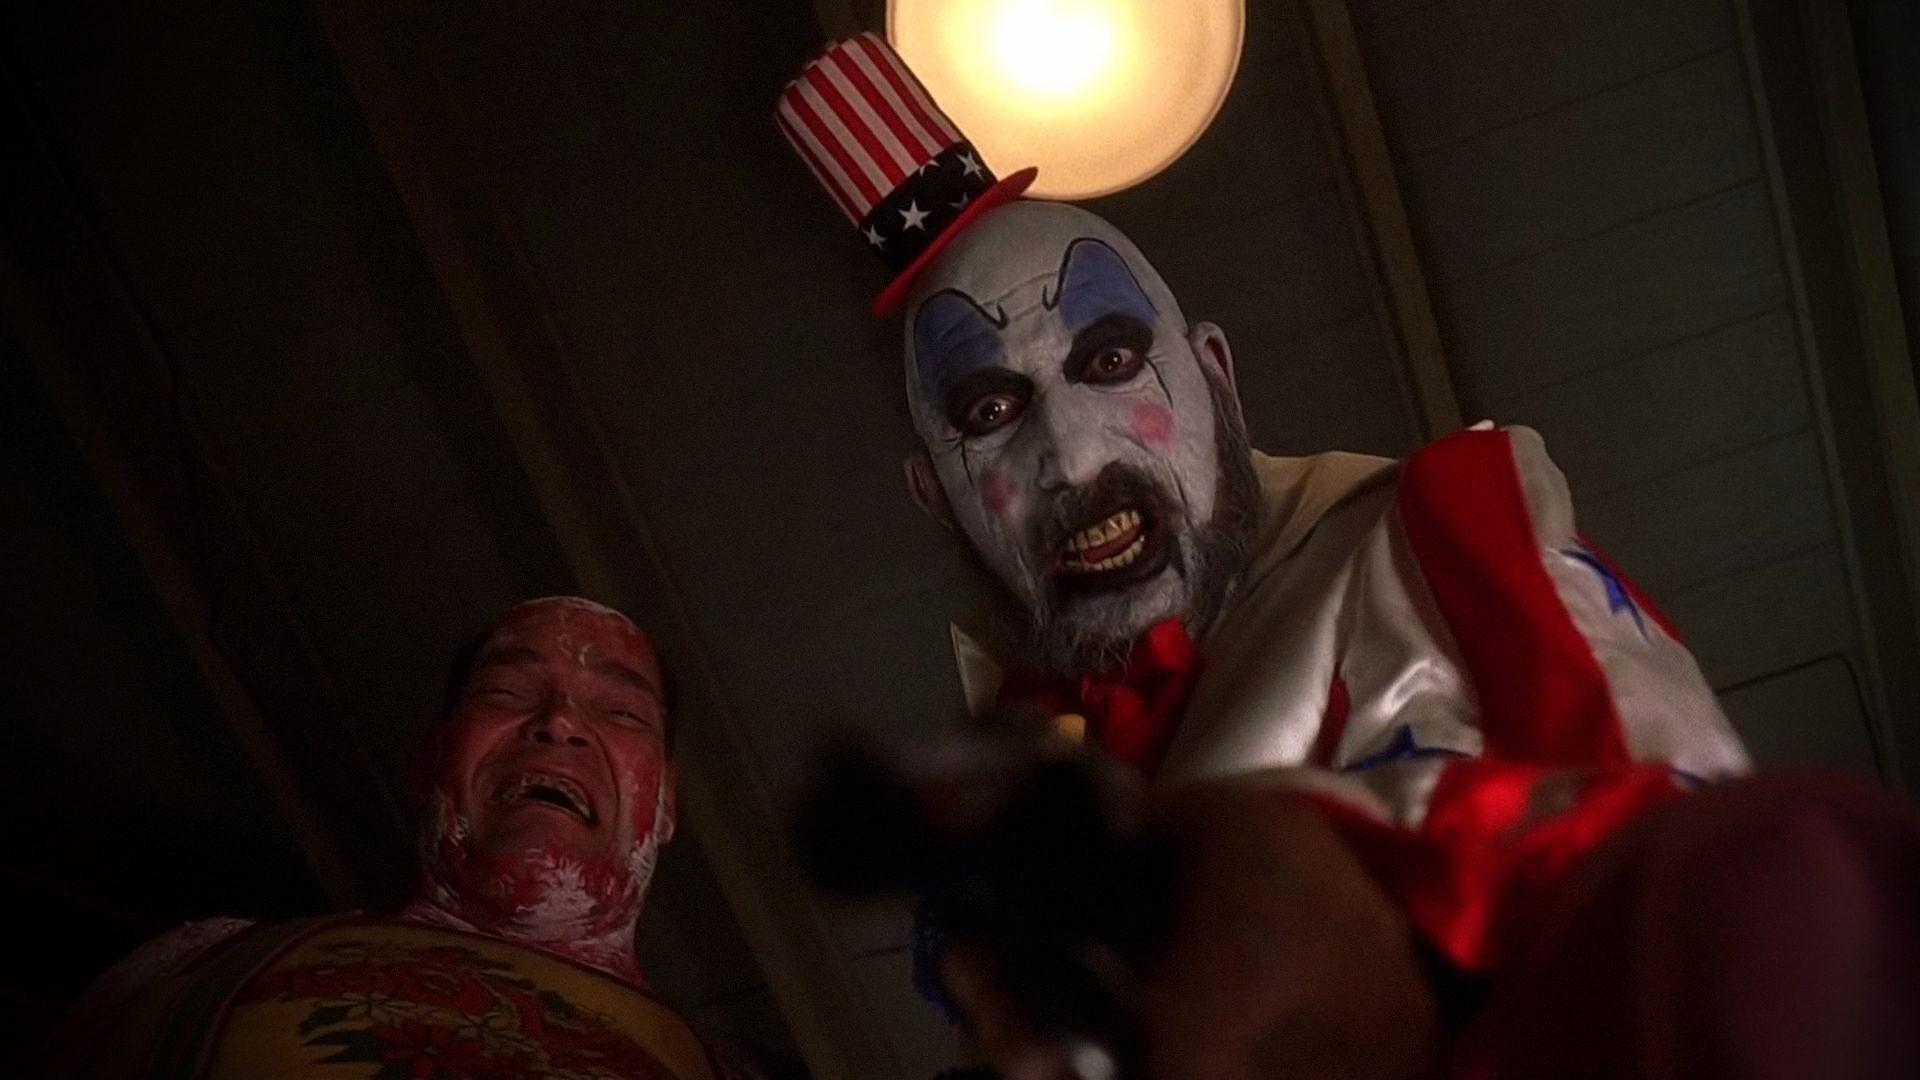 House Of 1000 Corpses Details